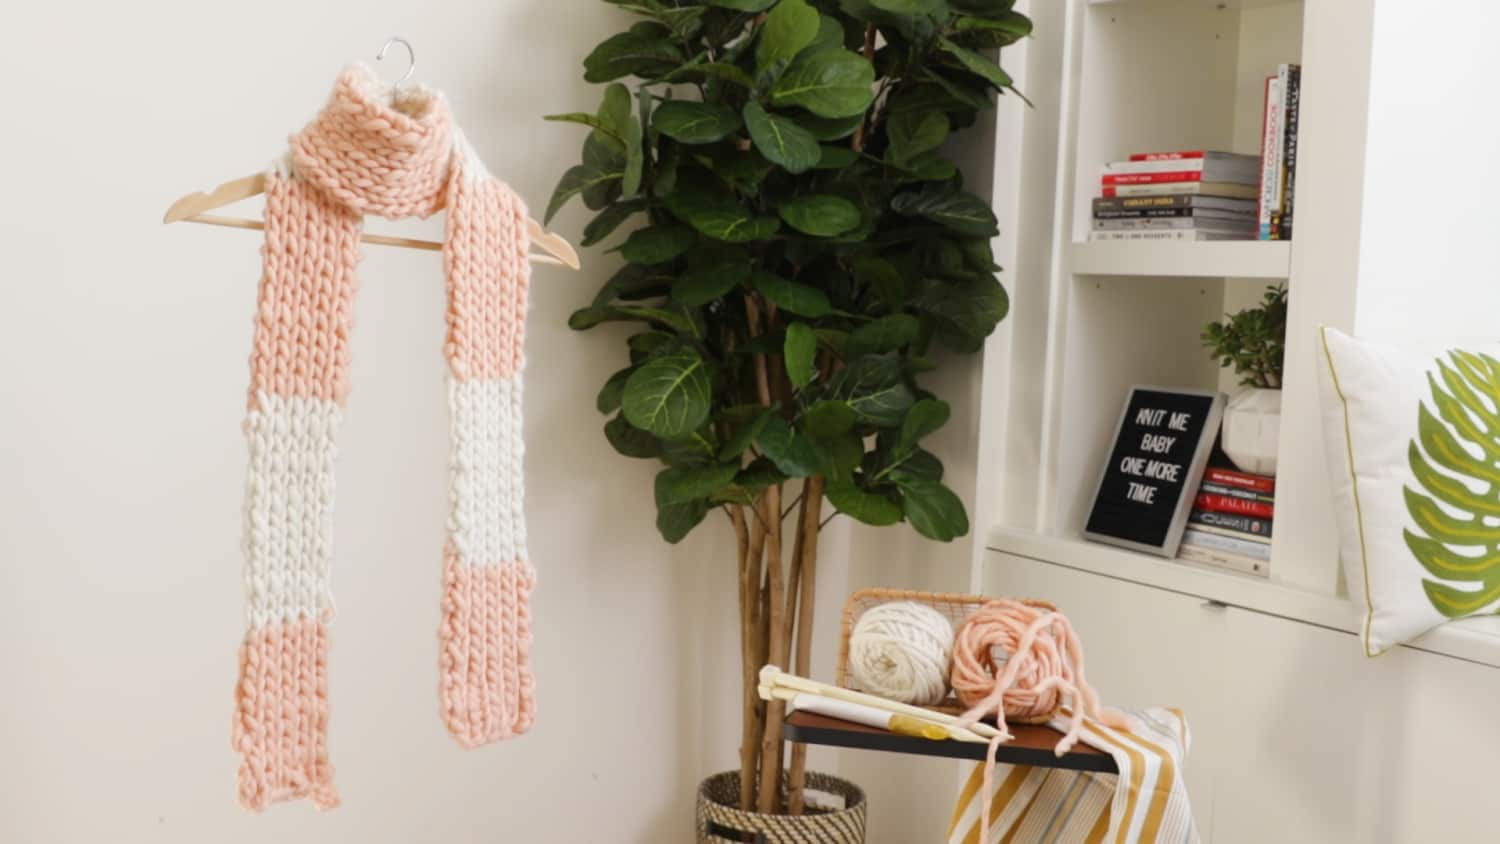 Ever Wanted to Learn to Knit? We'll Show You How It's Done